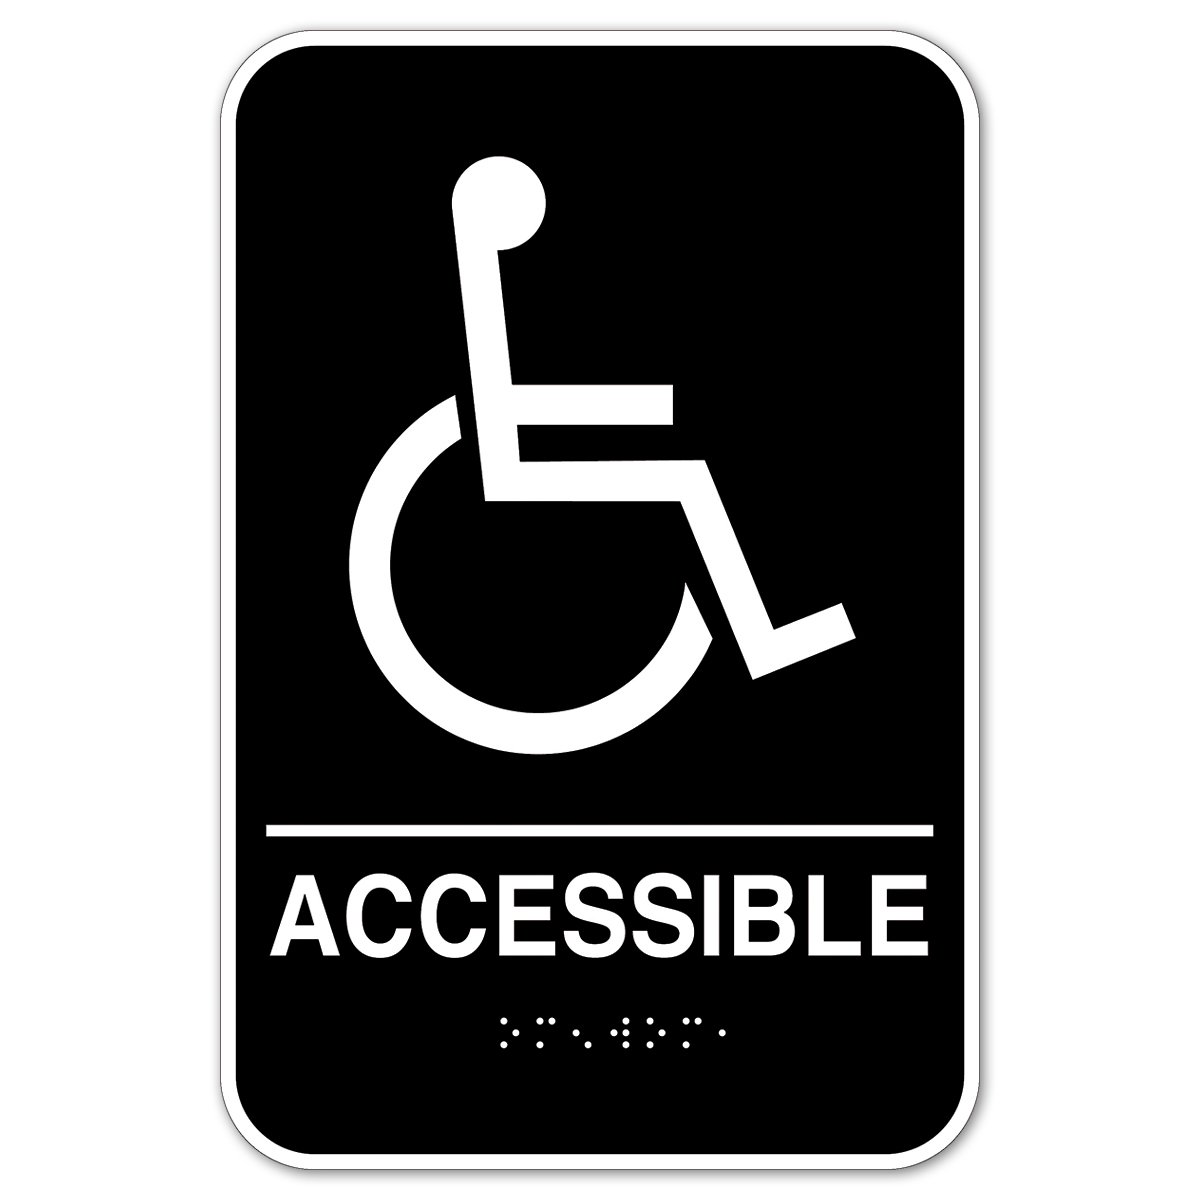 Wheelchair ACCESSIBLE|Braille - 098094A